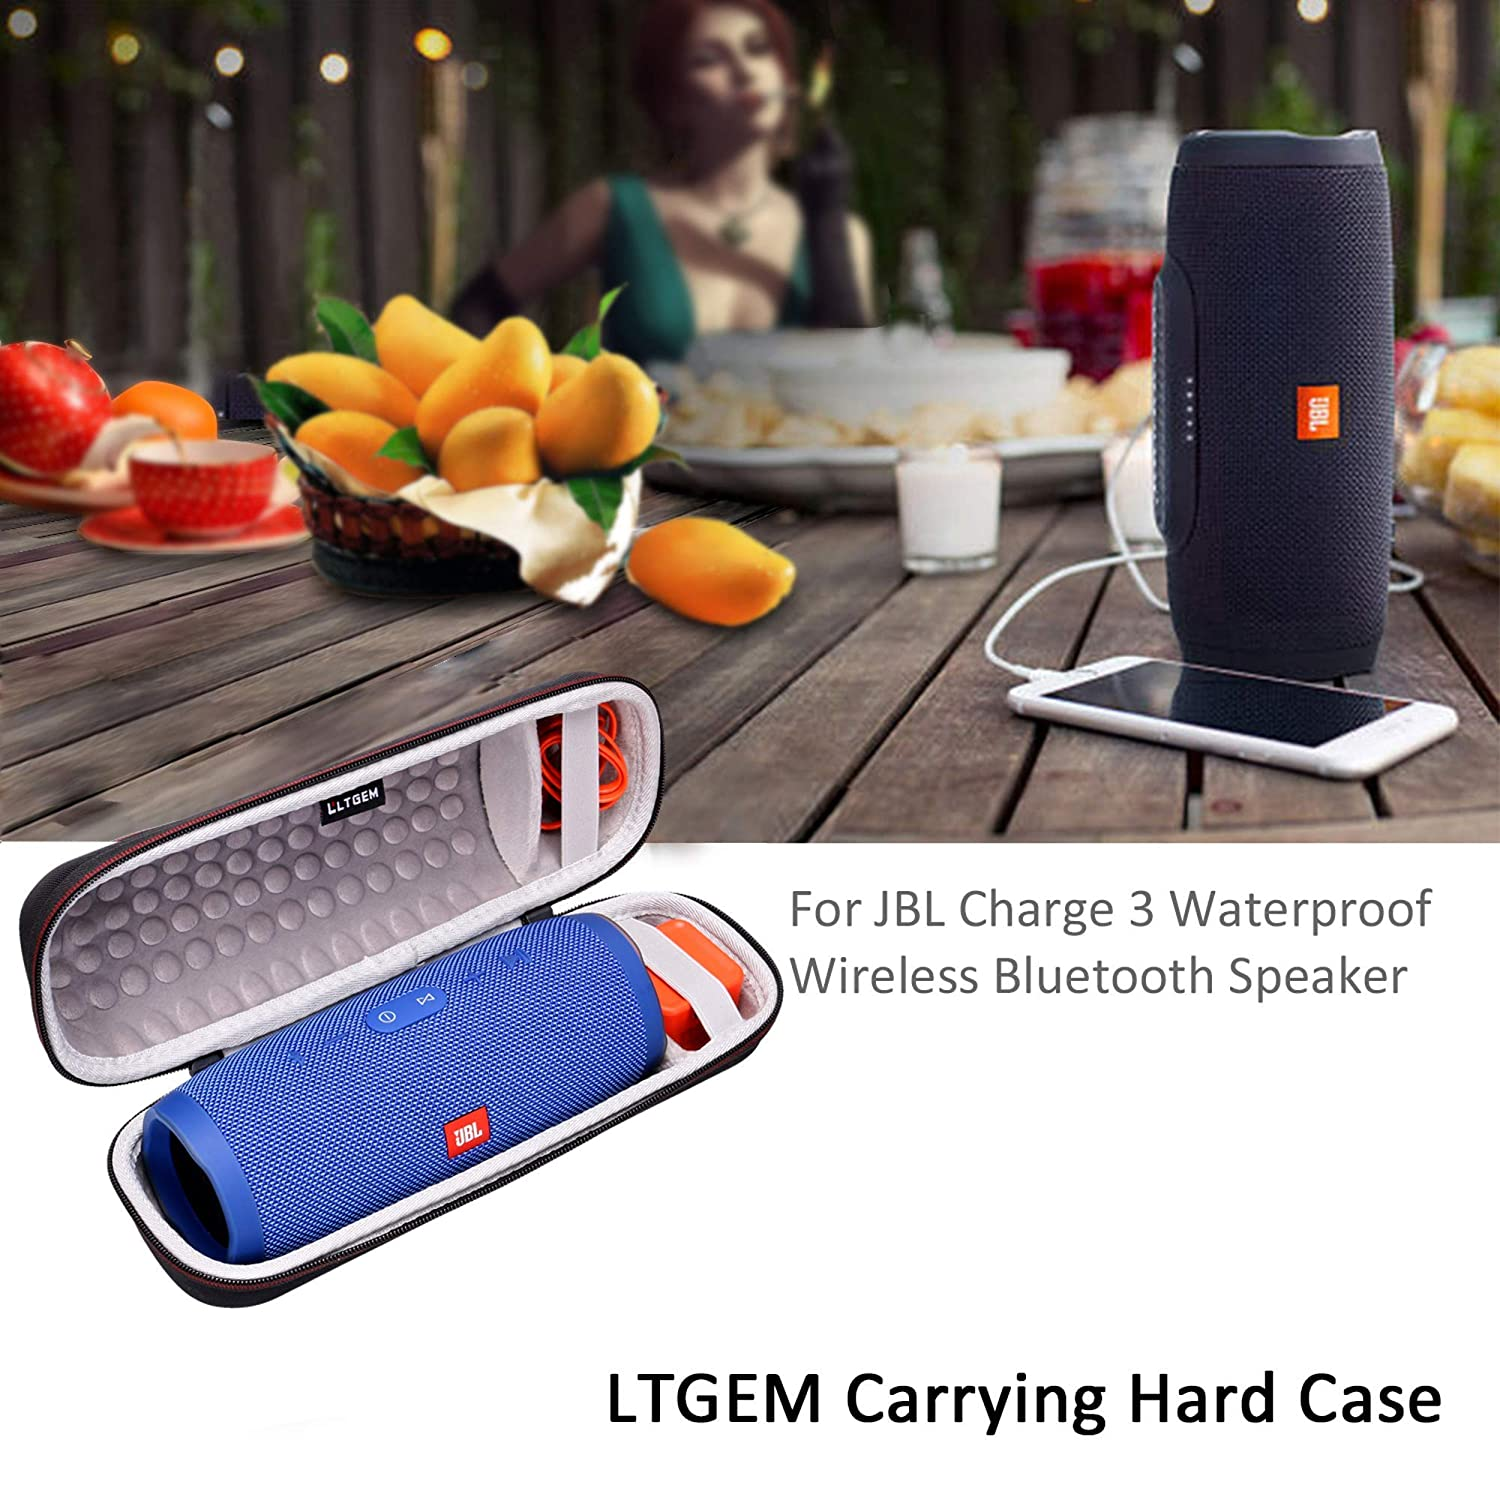 Ltgem Case For Jbl Charge 3 Waterproof Portable Wireless Speaker Bluetooth Fits Usb Cable And Charger Is Not Include Electronics